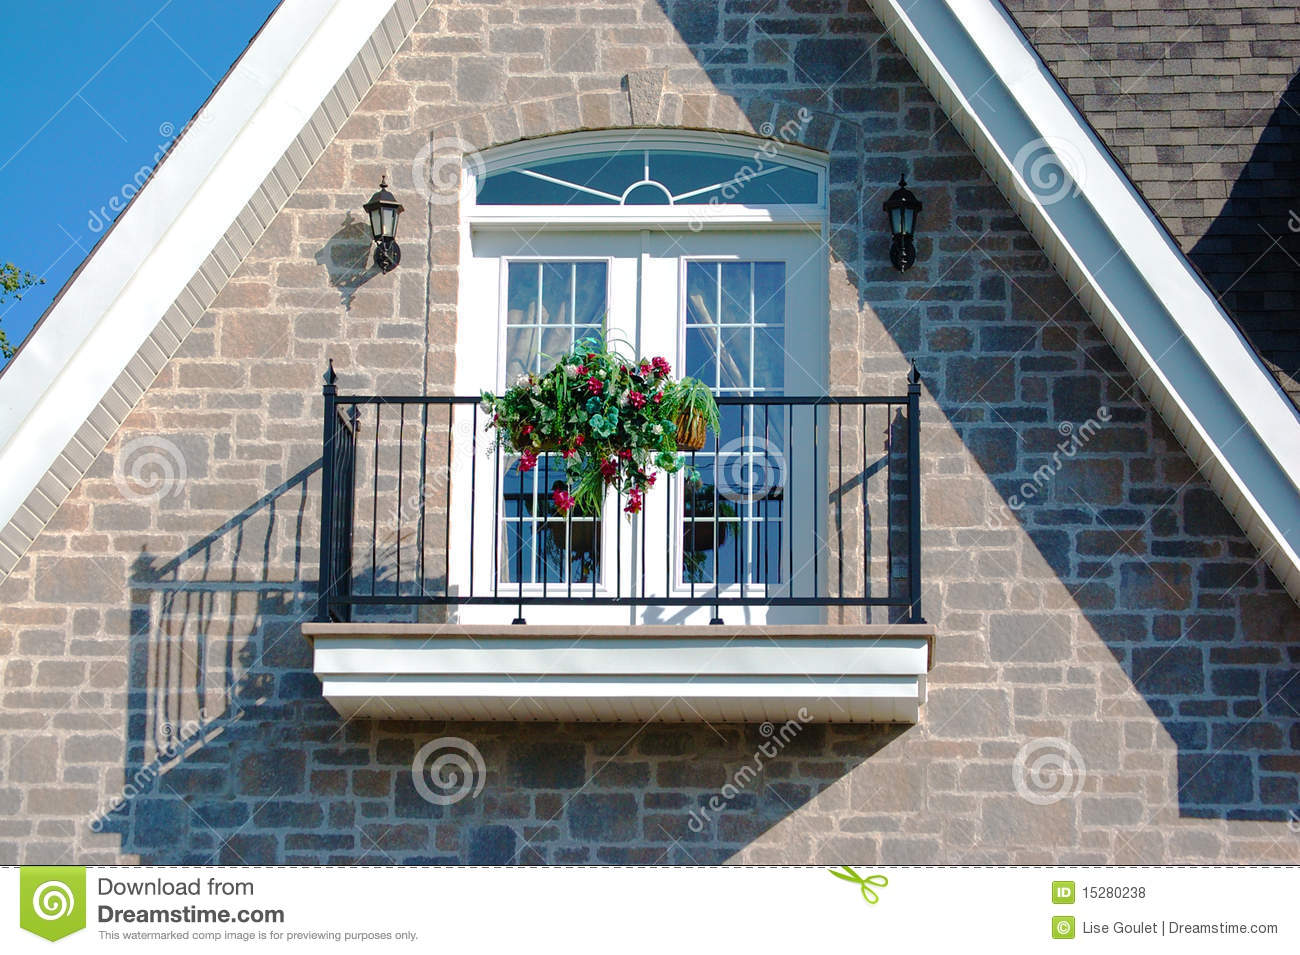 House balcony royalty free stock photos image 15280238 for Balcony of house